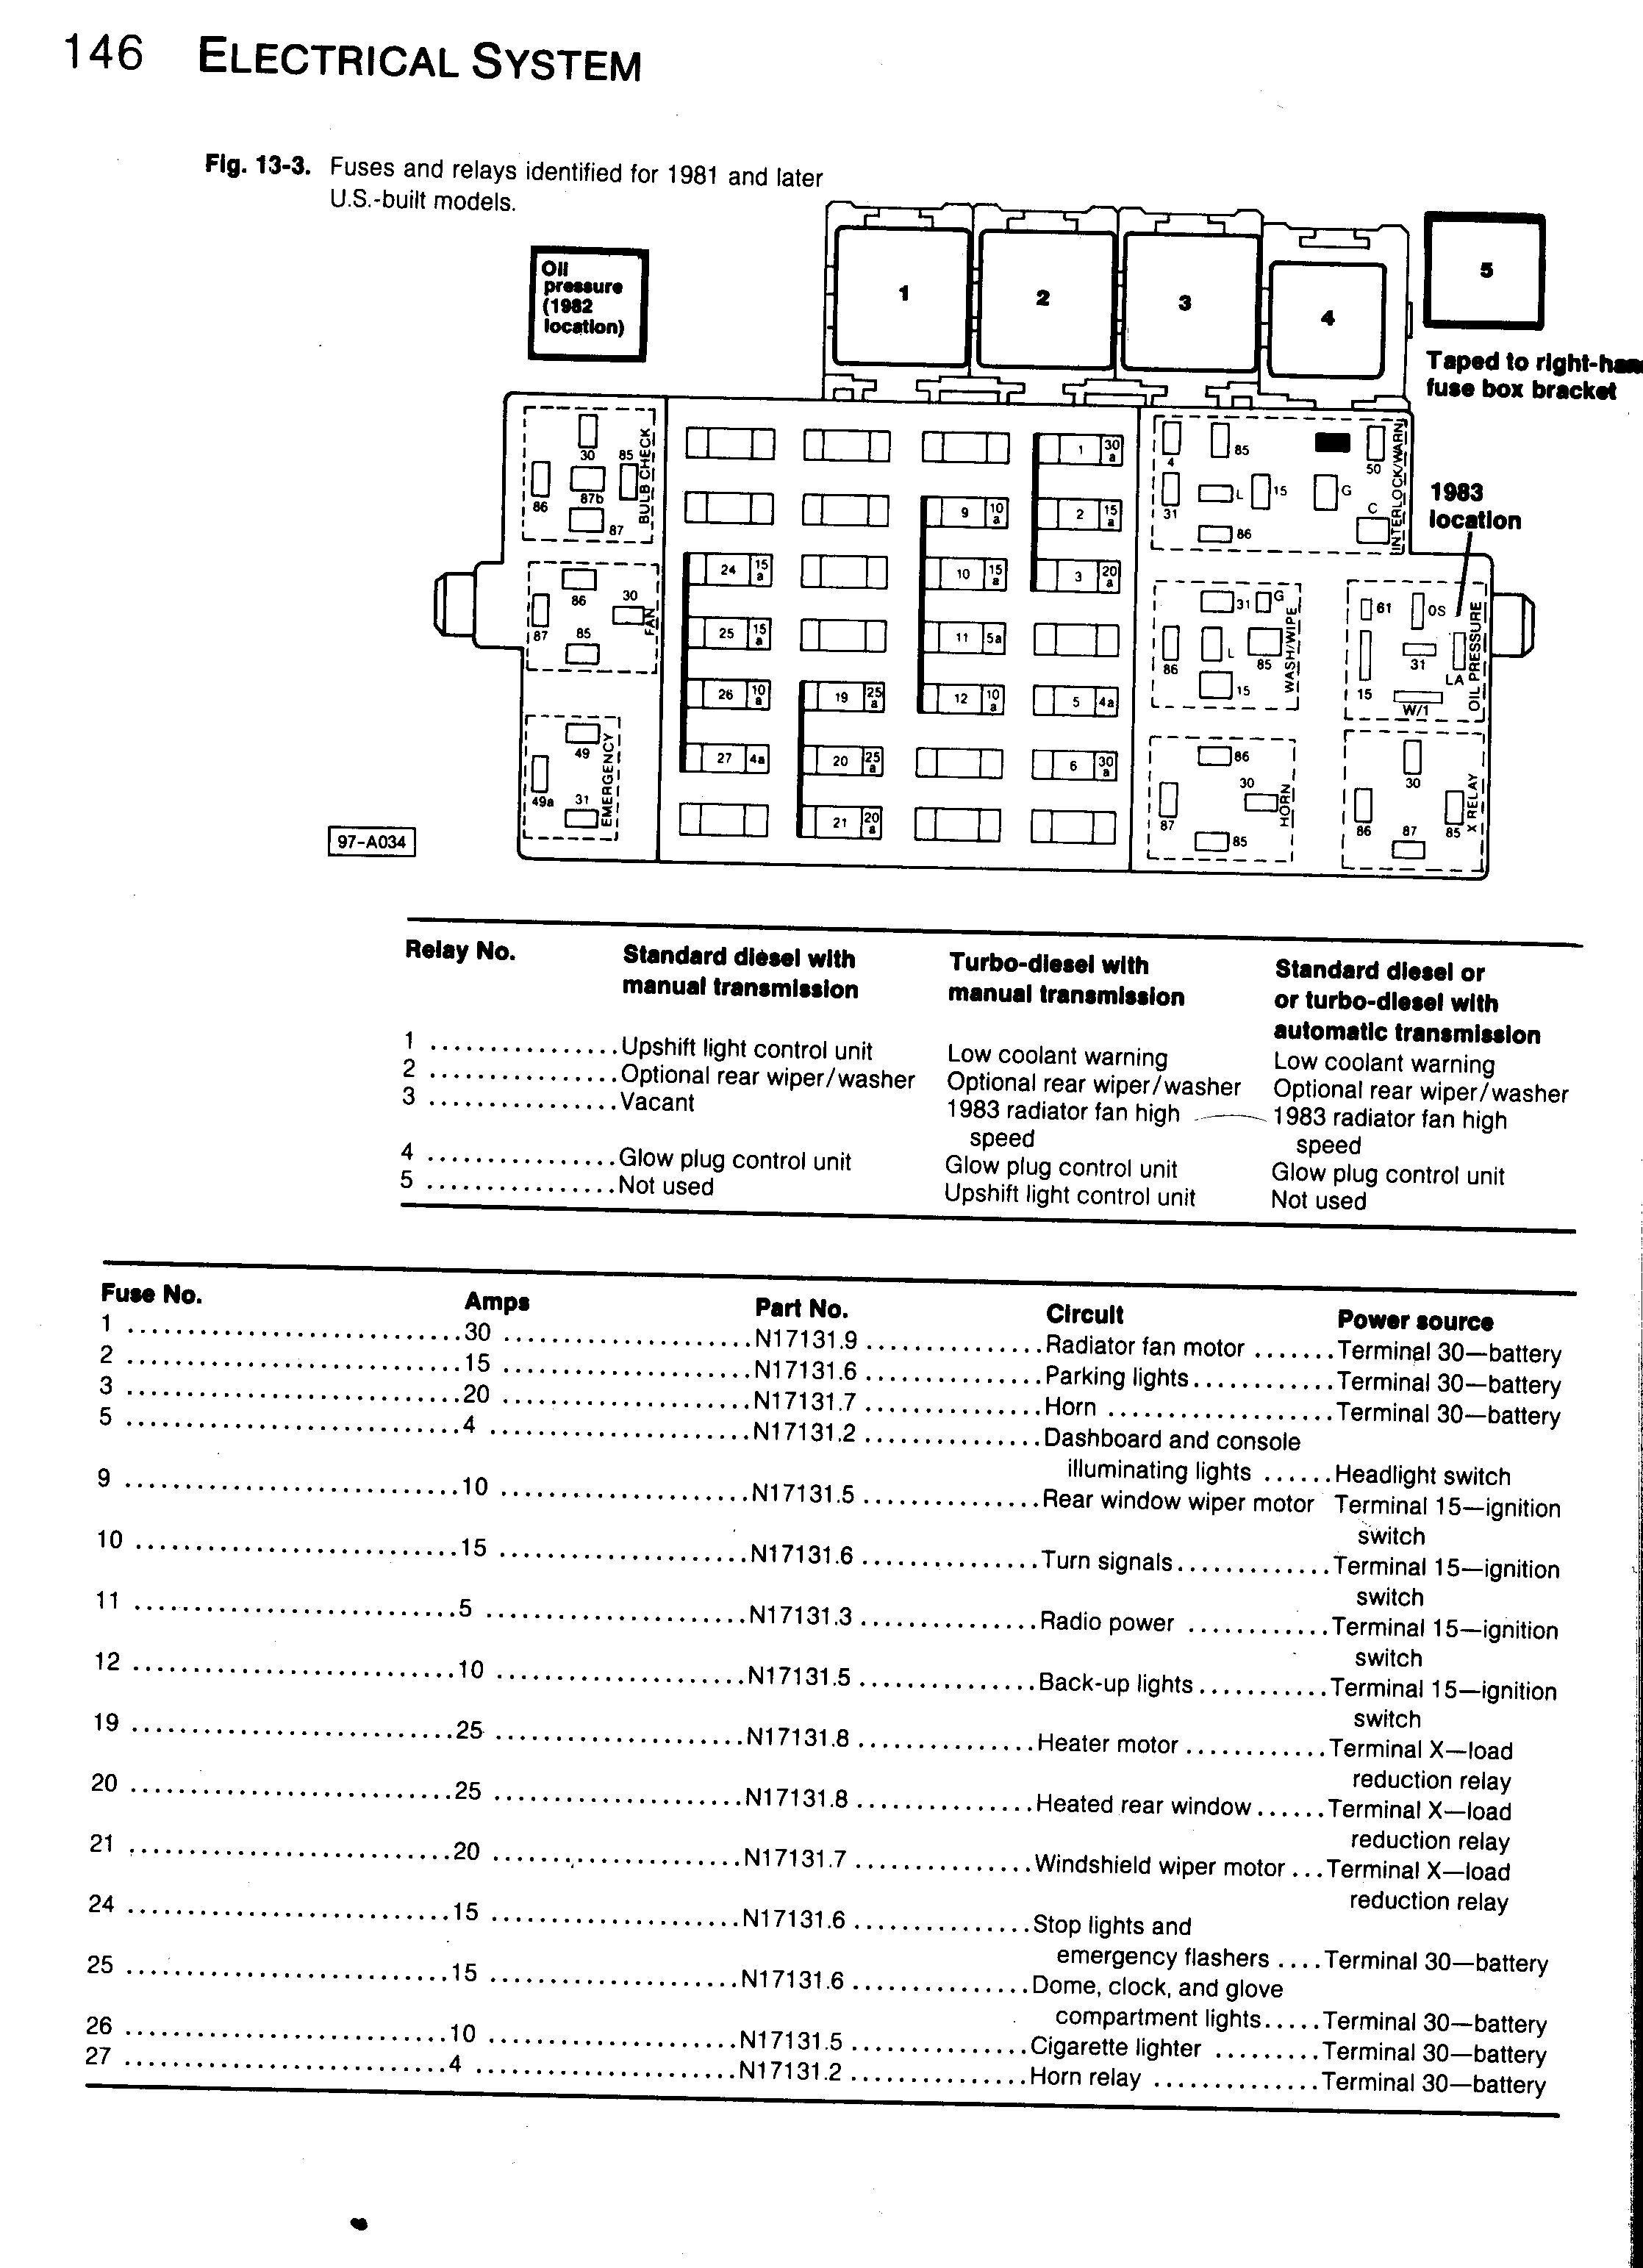 1965 Vw Fuse Box Wiring Library Econoline Diagram